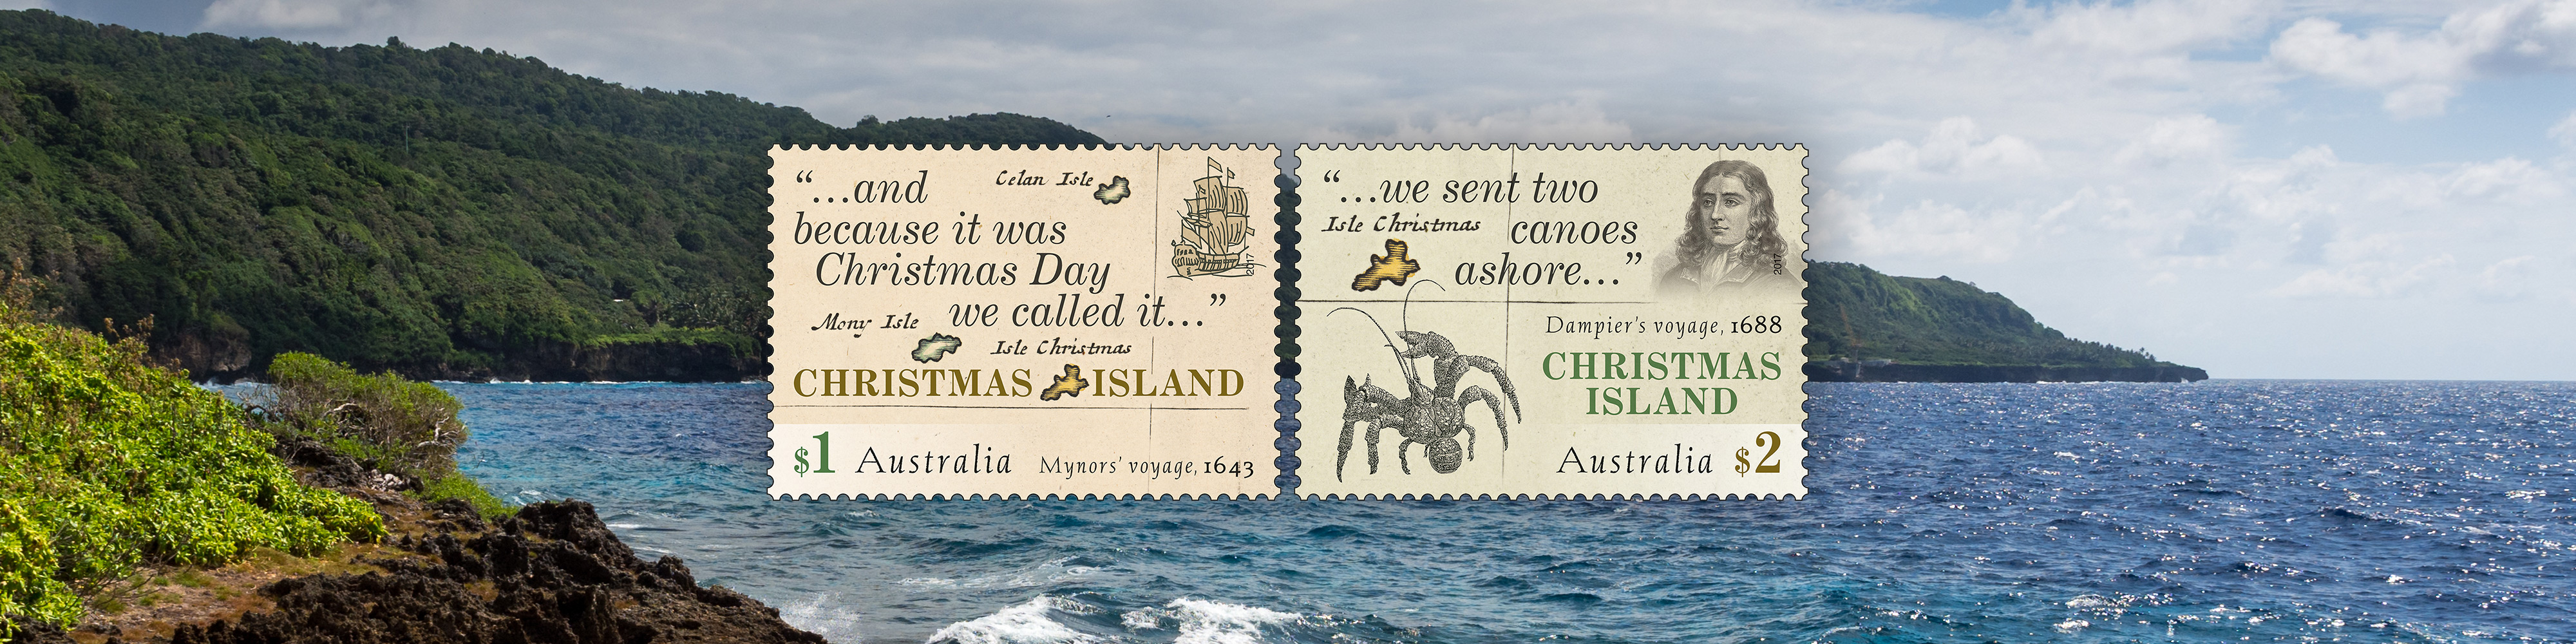 Christmas Island Australia.The Naming Of Christmas Island Australia Post